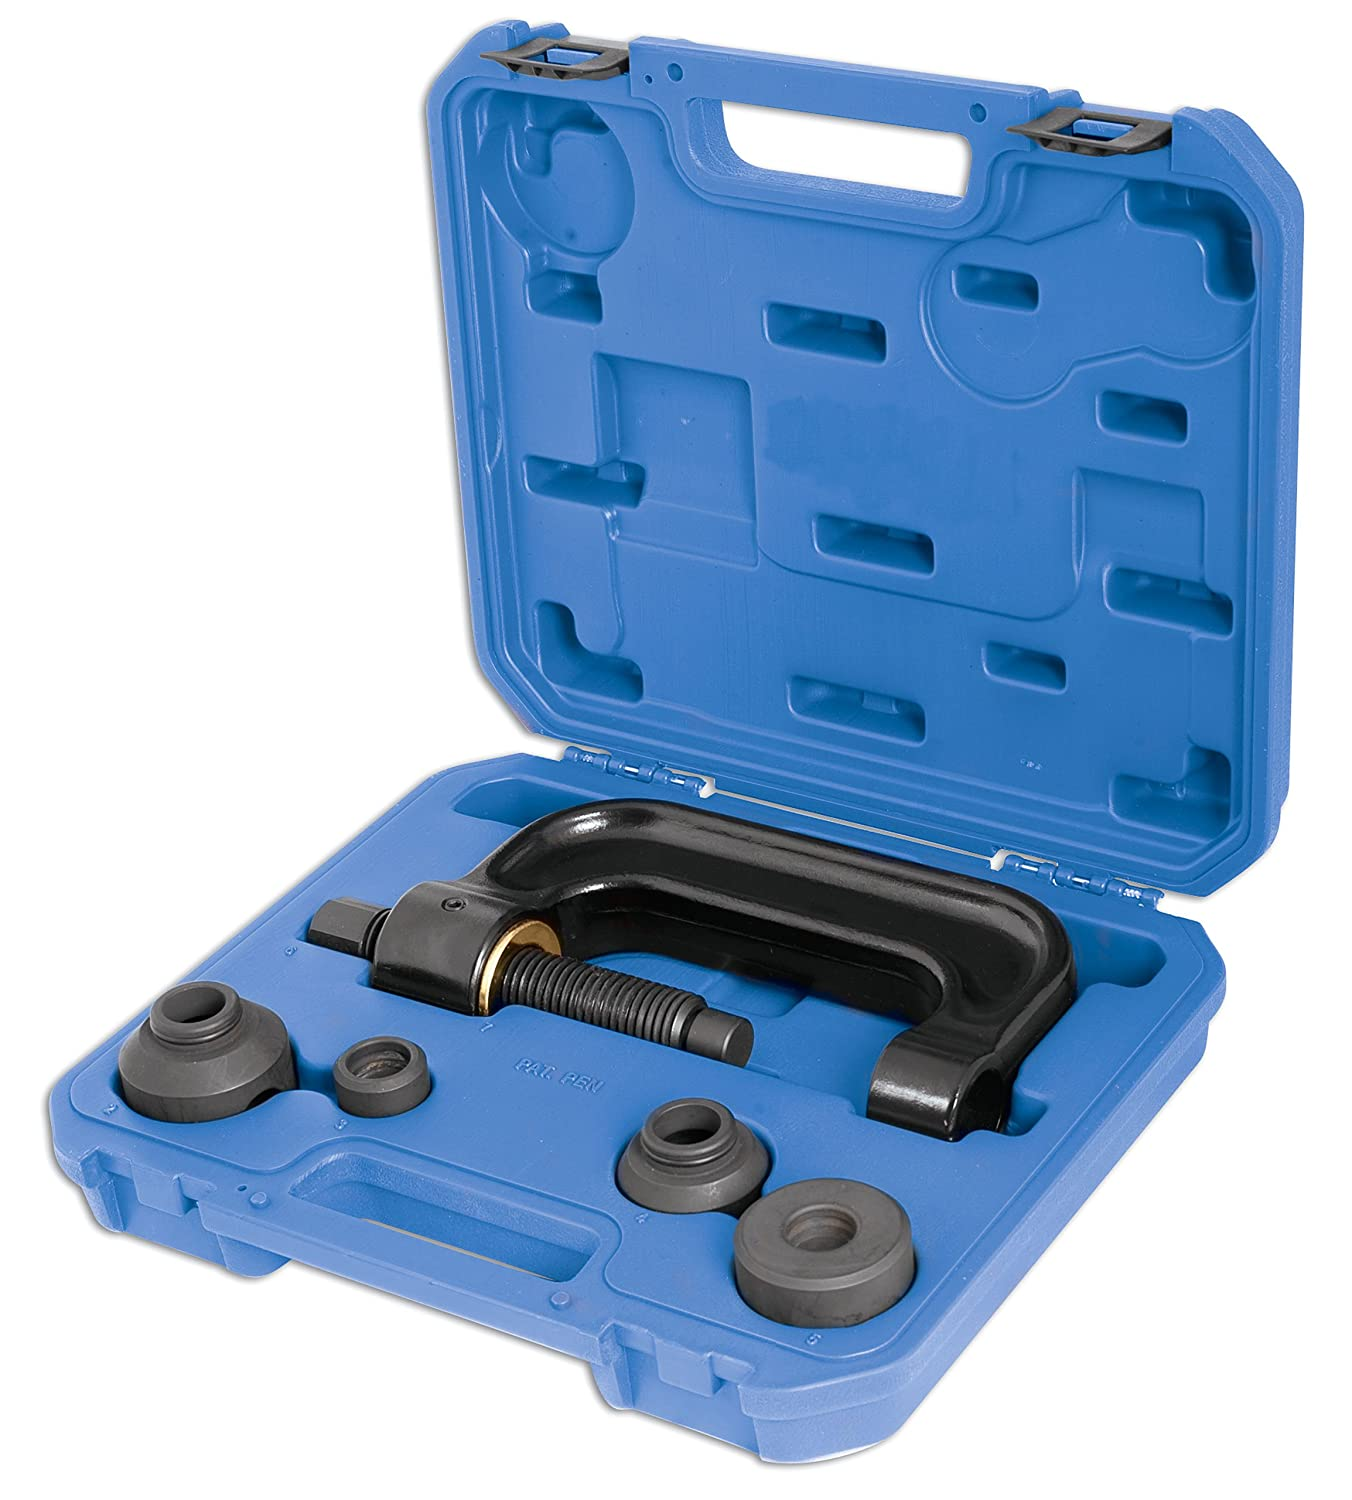 Laser 4858 Lower Ball Joint Remover/Installer The Tool Connection Ltd.